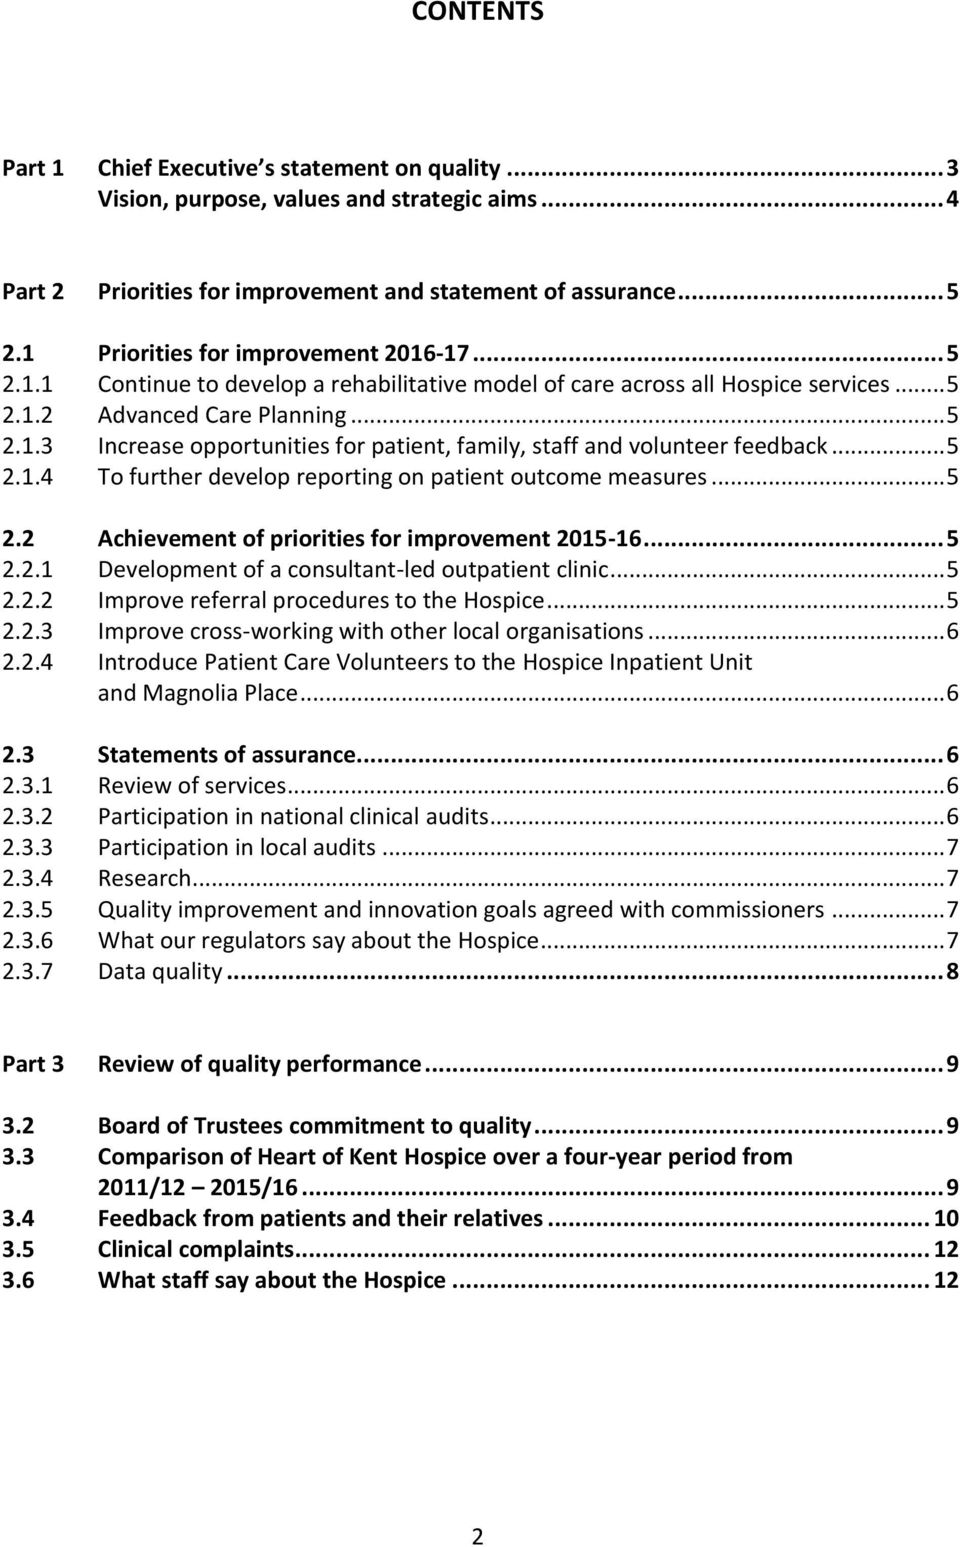 .. 5 2.1.4 To further develop reporting on patient outcome measures... 5 2.2 Achievement of priorities for improvement 2015-16... 5 2.2.1 Development of a consultant-led outpatient clinic... 5 2.2.2 Improve referral procedures to the Hospice.